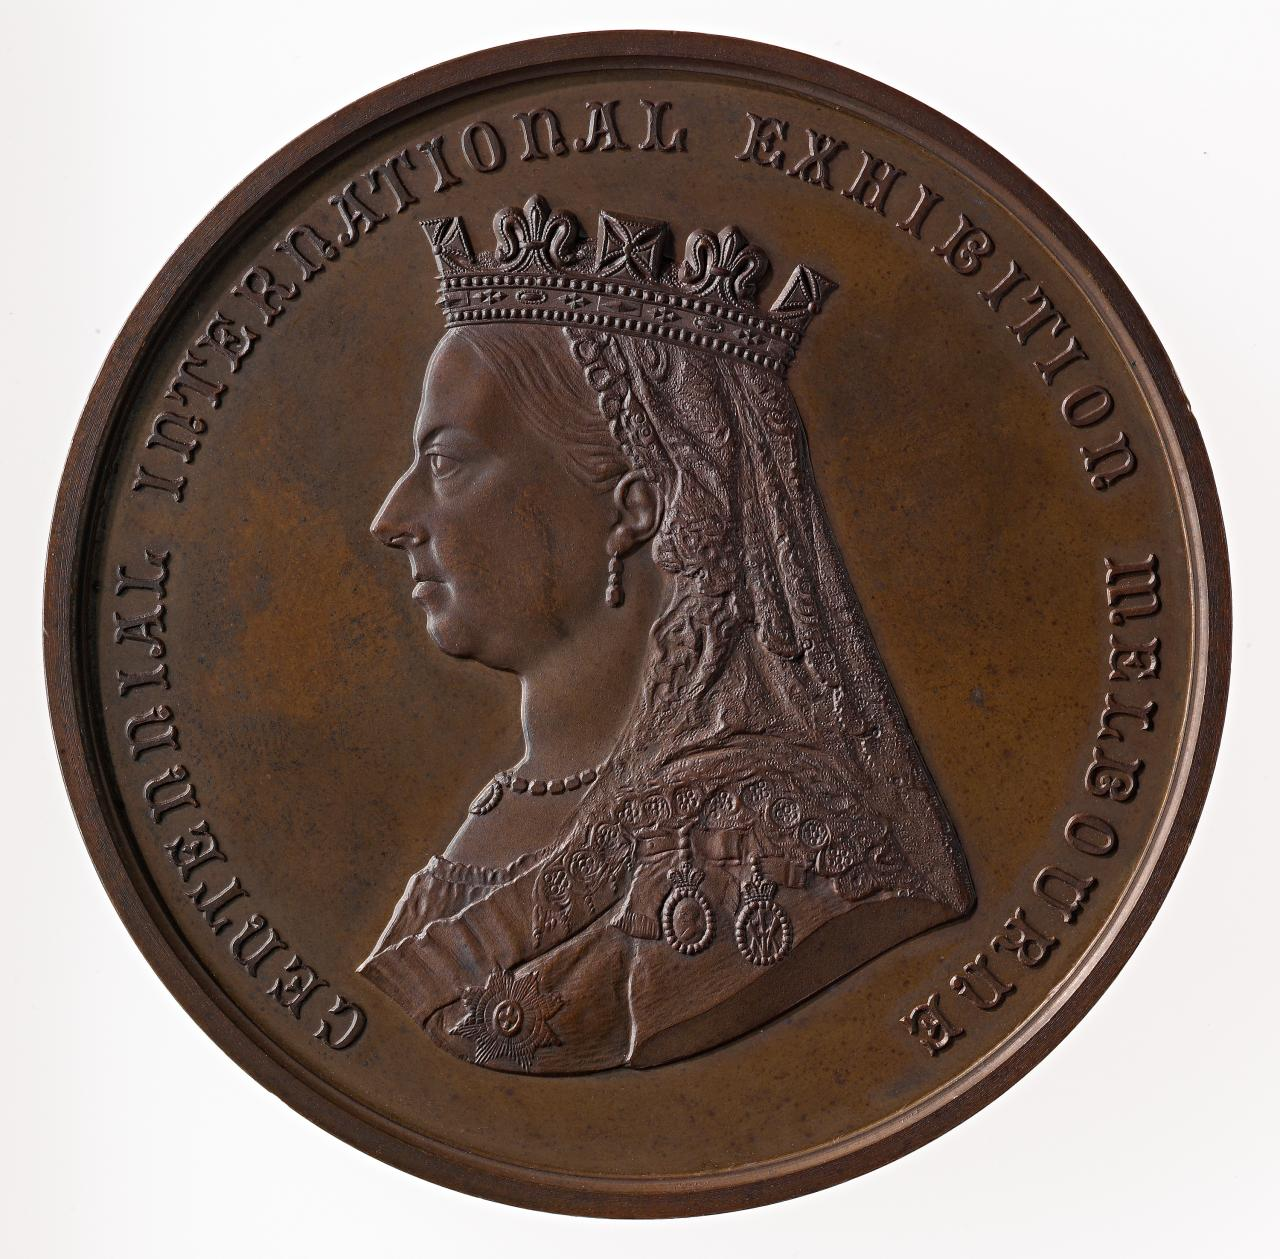 Centennial International Exhibition, Melbourne, prize medal